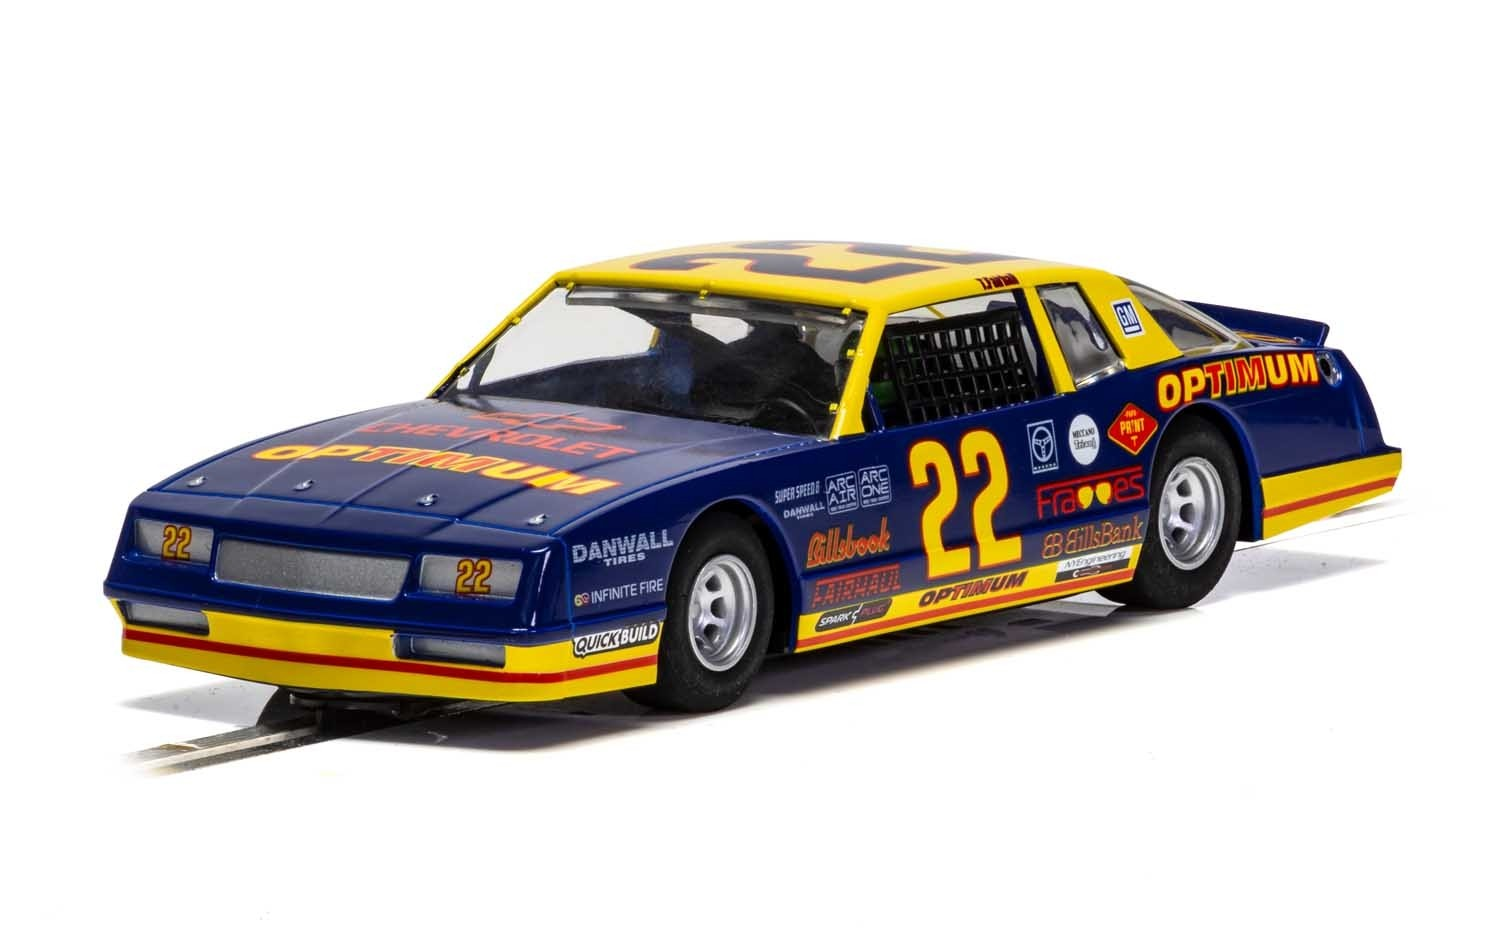 Chevrolet Monte Carlo 1986 - 'Optimum' No22 1/32 Slot Car